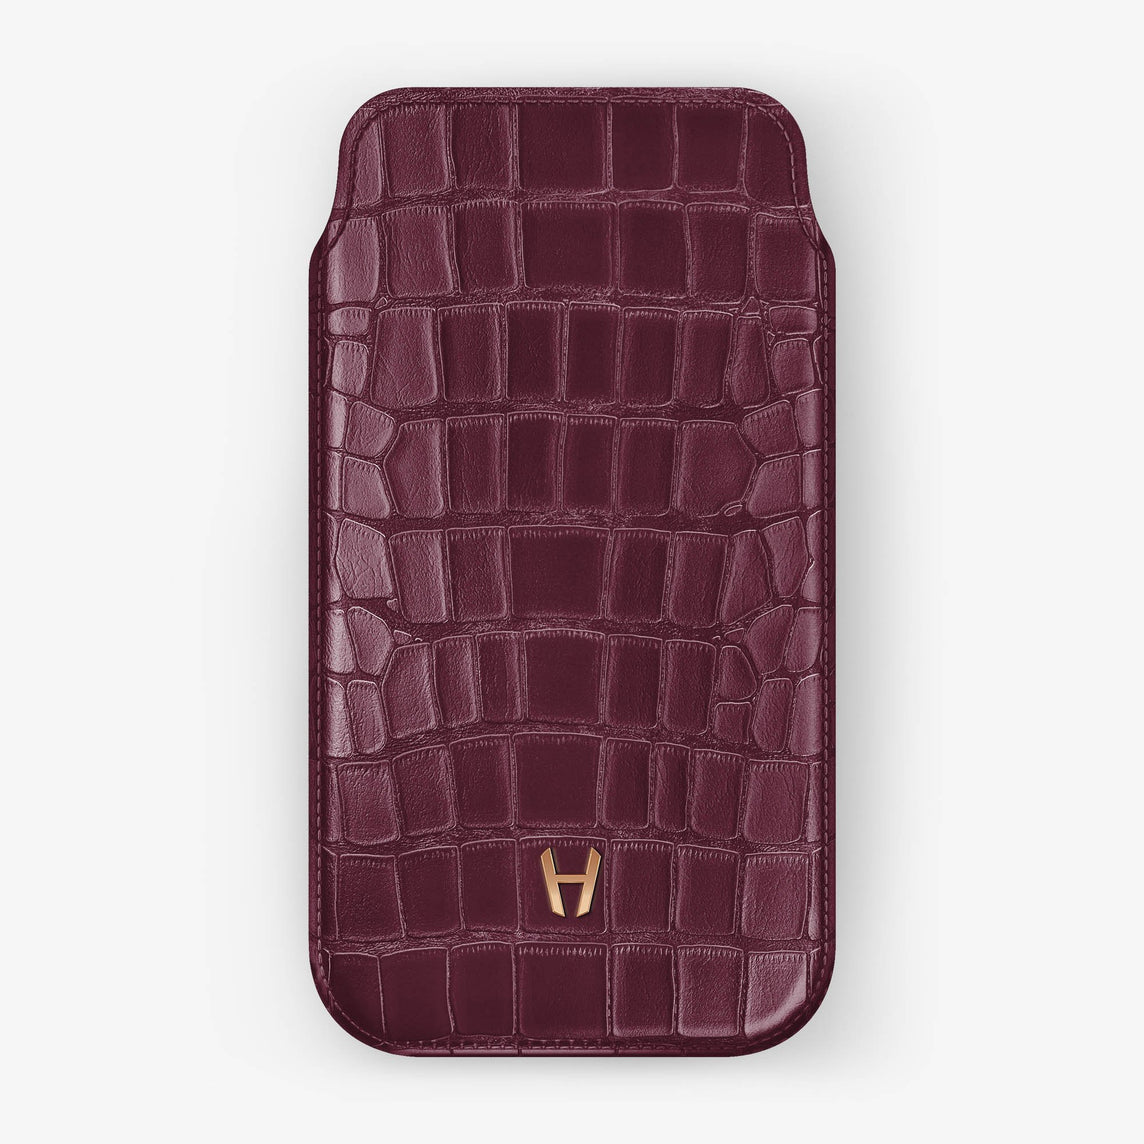 Alligator [iPhone Sleeve Case] [model:iphone-xsmax-case] [colour:burgundy] [finishing:rose-gold]